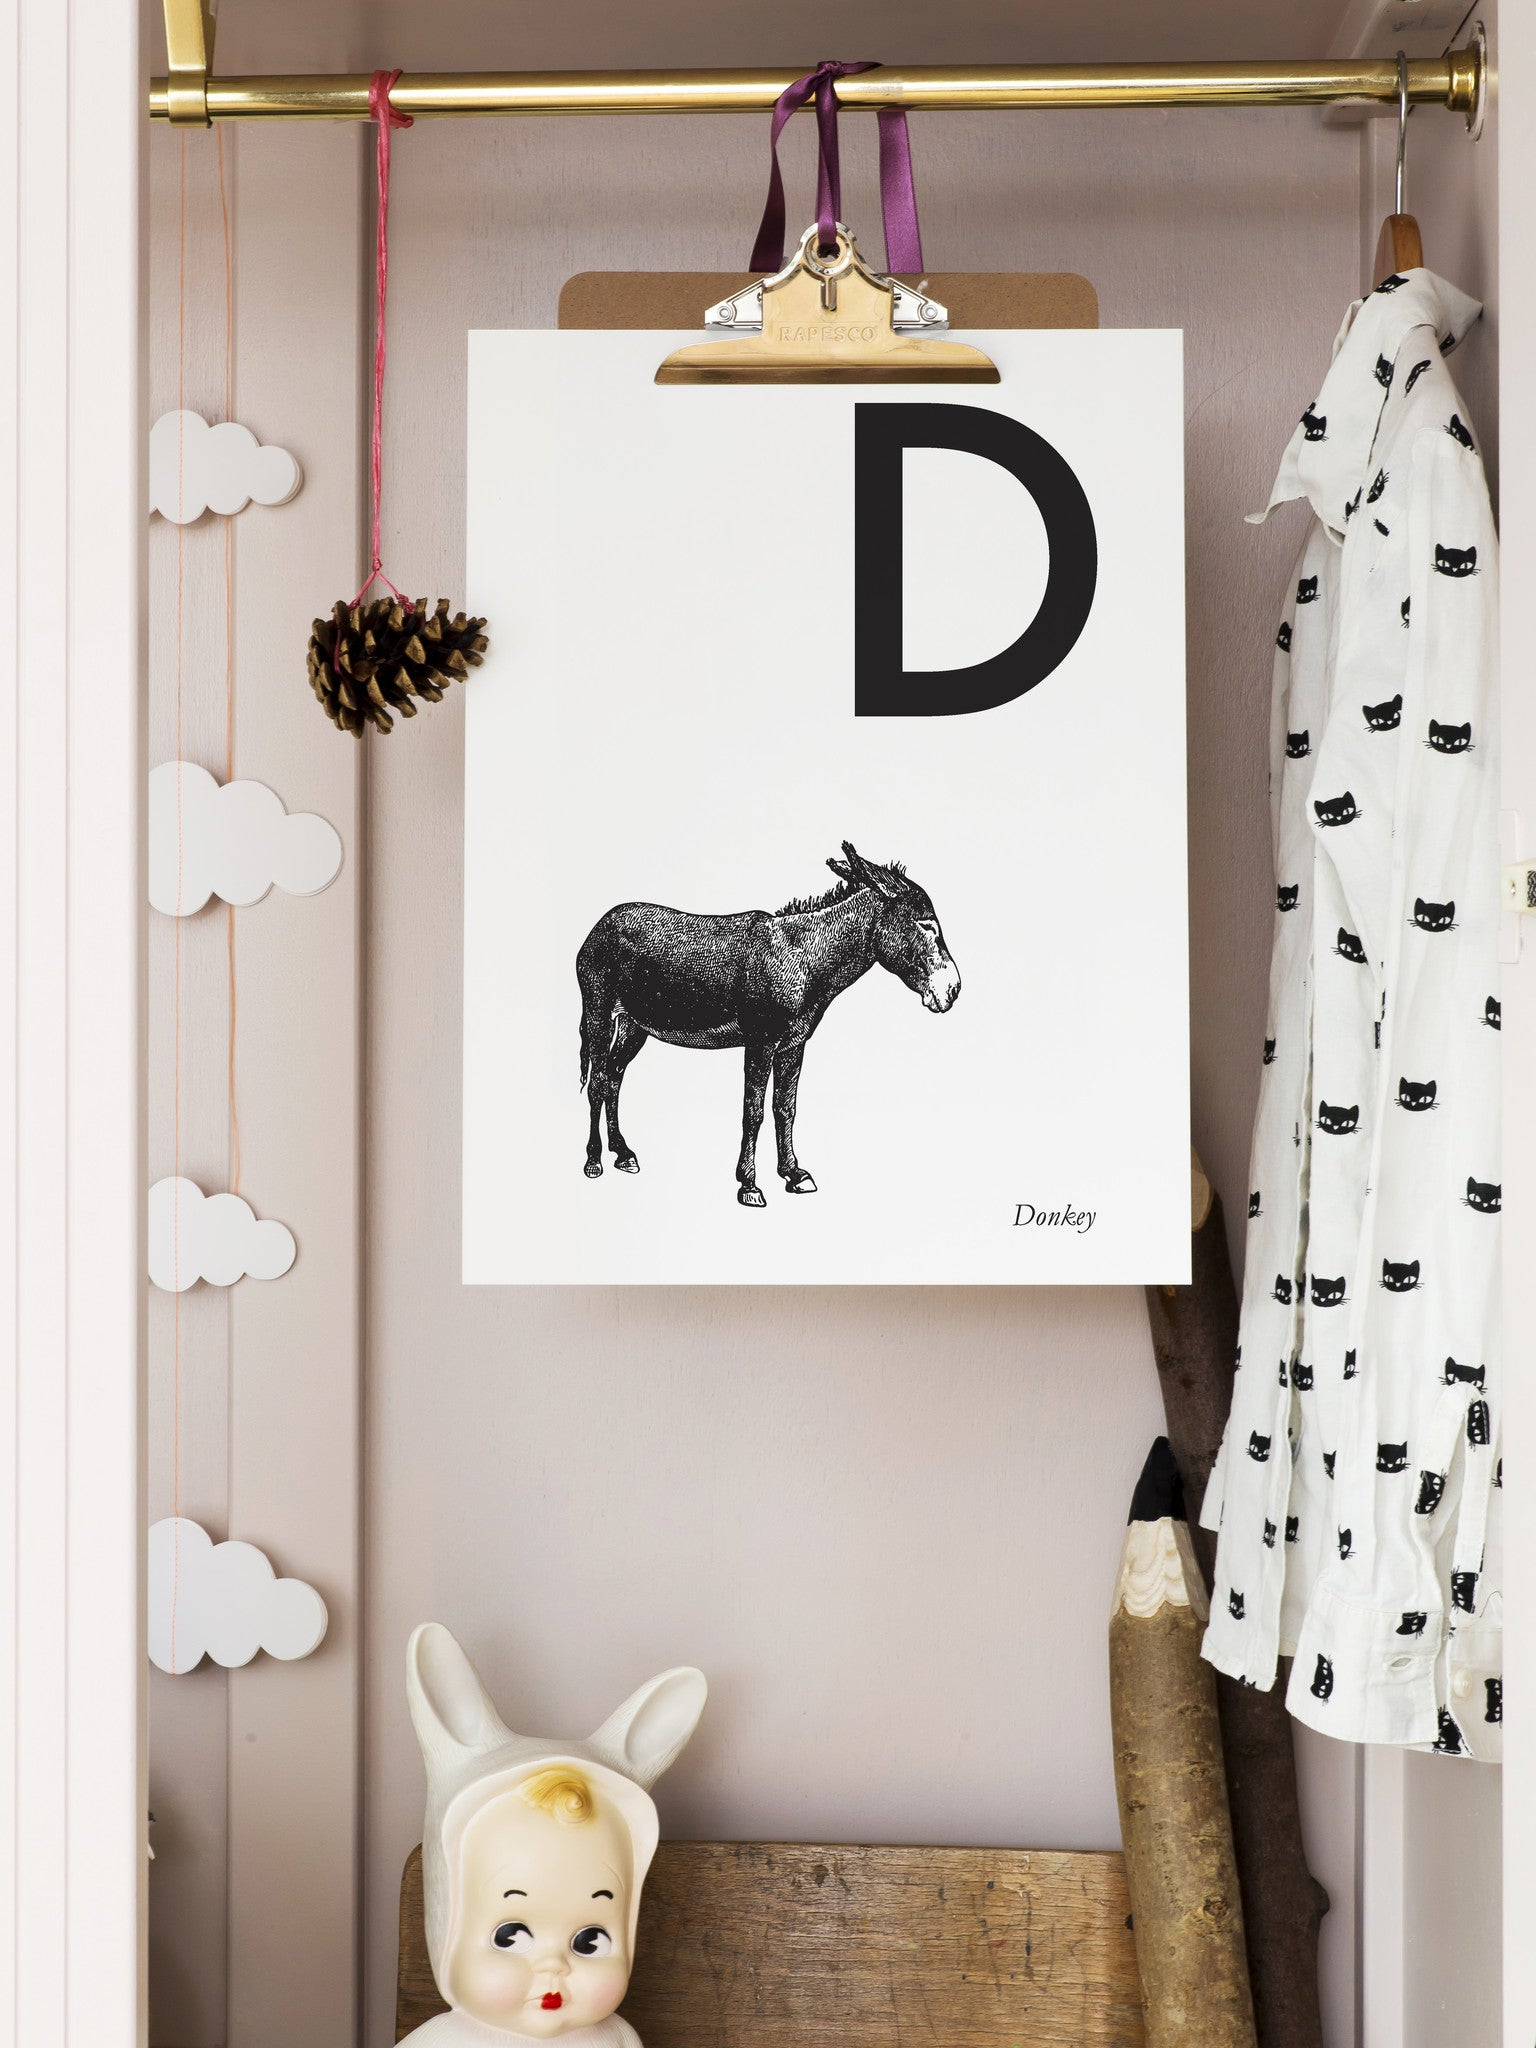 ANIMAL LETTER P DOWNLOADABLE PRINT